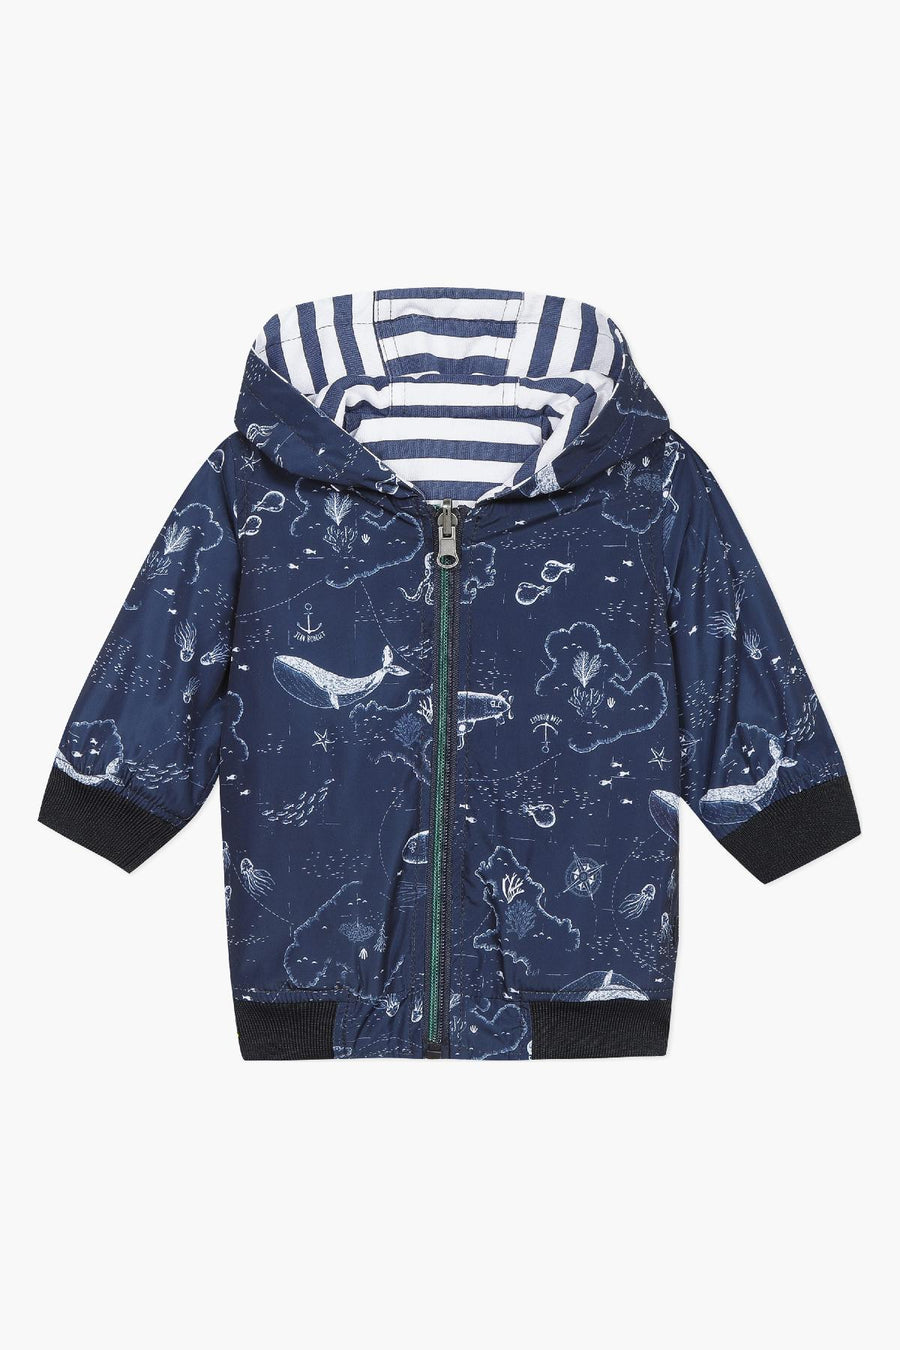 Jean Bourget Under The Sea Reversible Baby Boys Jacket